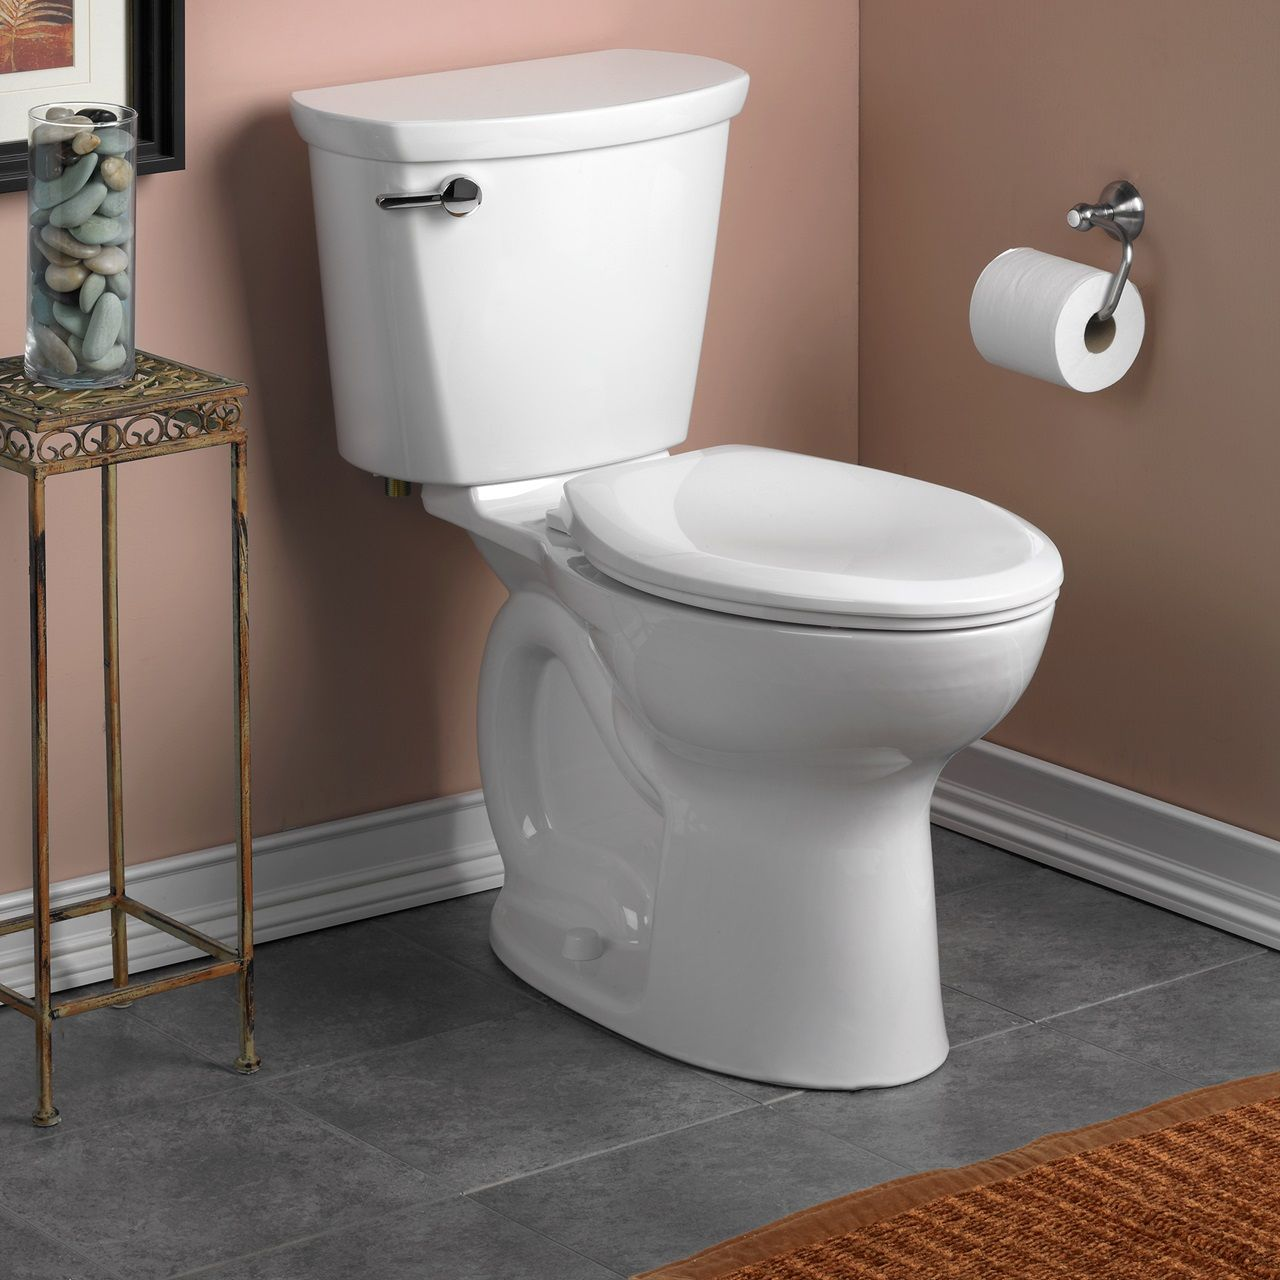 Toilets Cadet Pro Right Height Elongated 10 Inch Rough In 1 28 Gpf Toilet White Toilet Tank American Standard Toilet